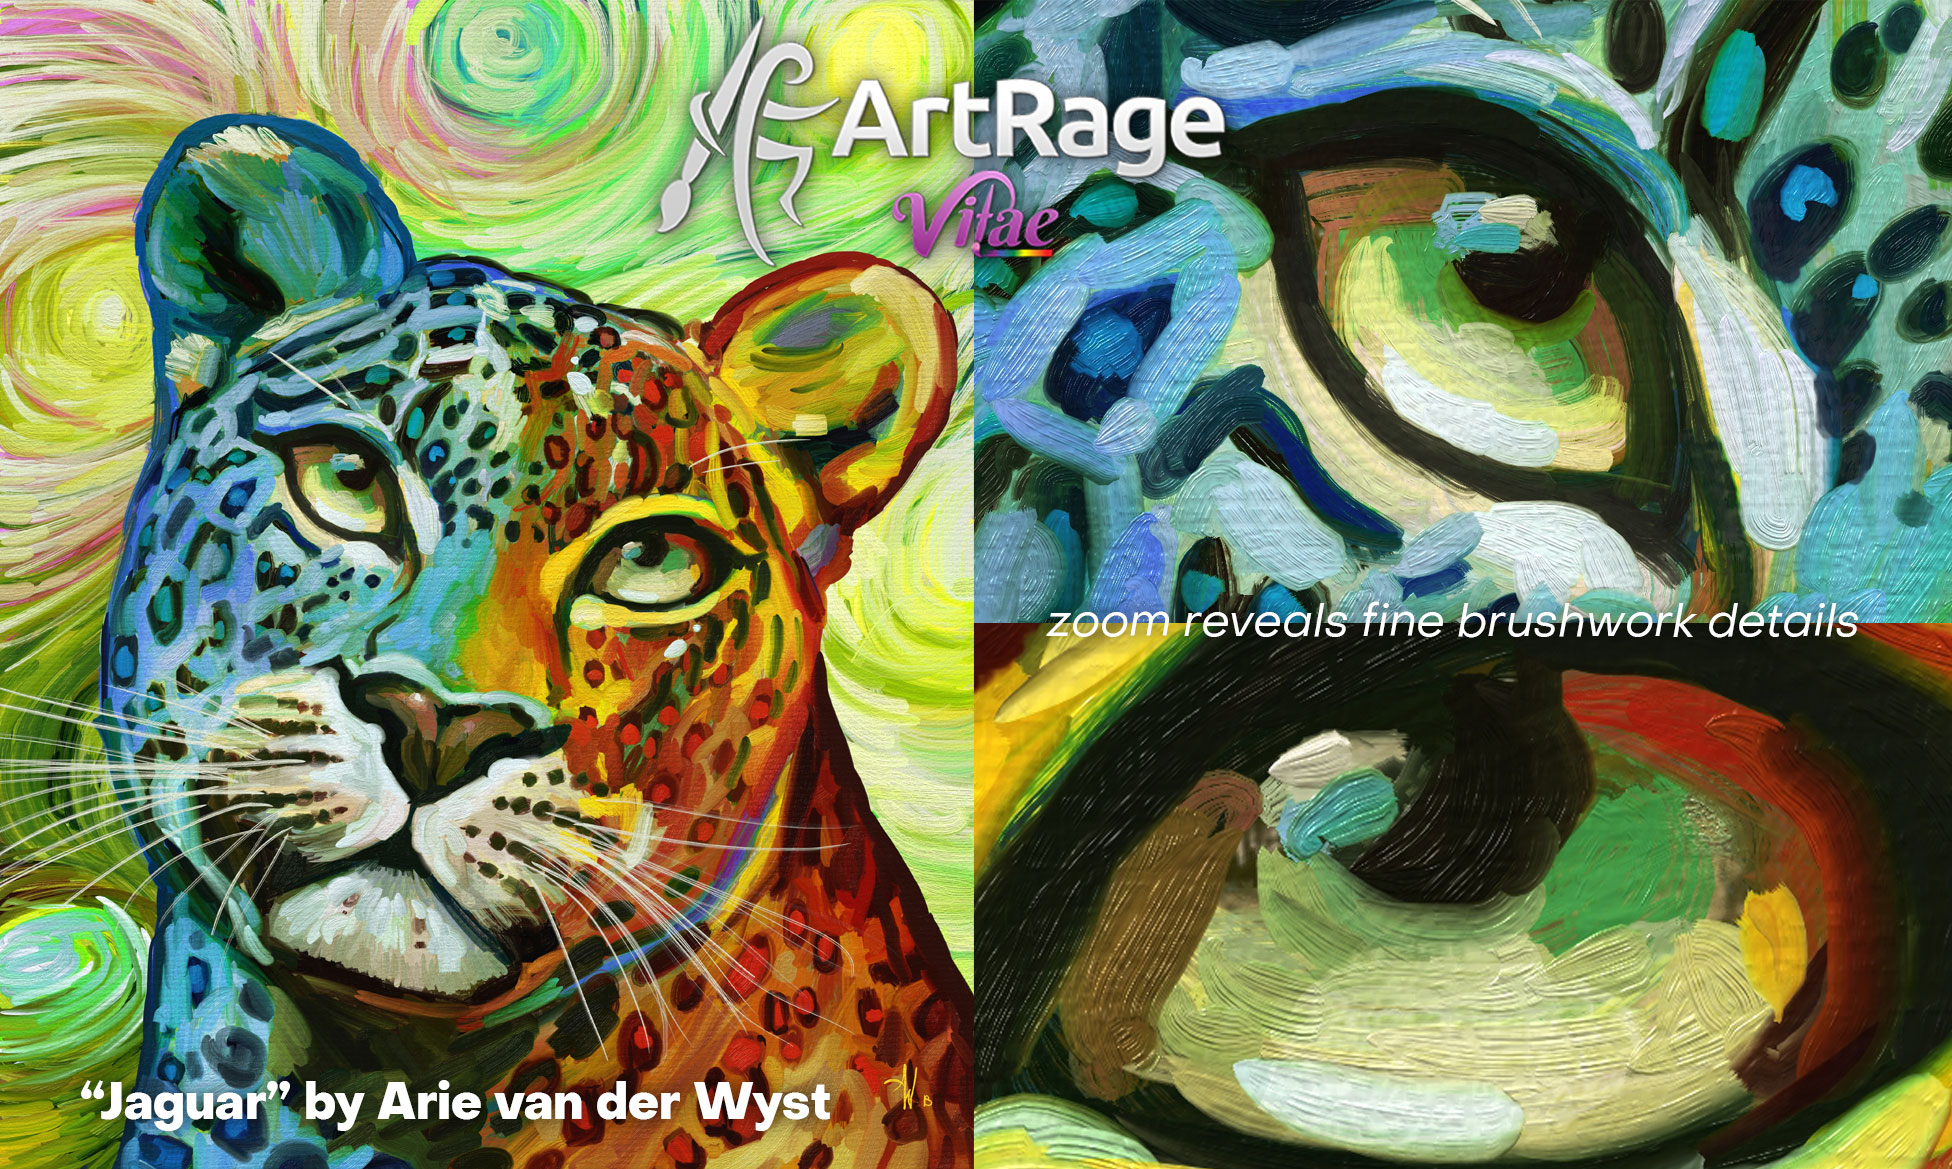 Jaguar painting by Arie van der Wyst with zoom to reveal details of brushstrokes